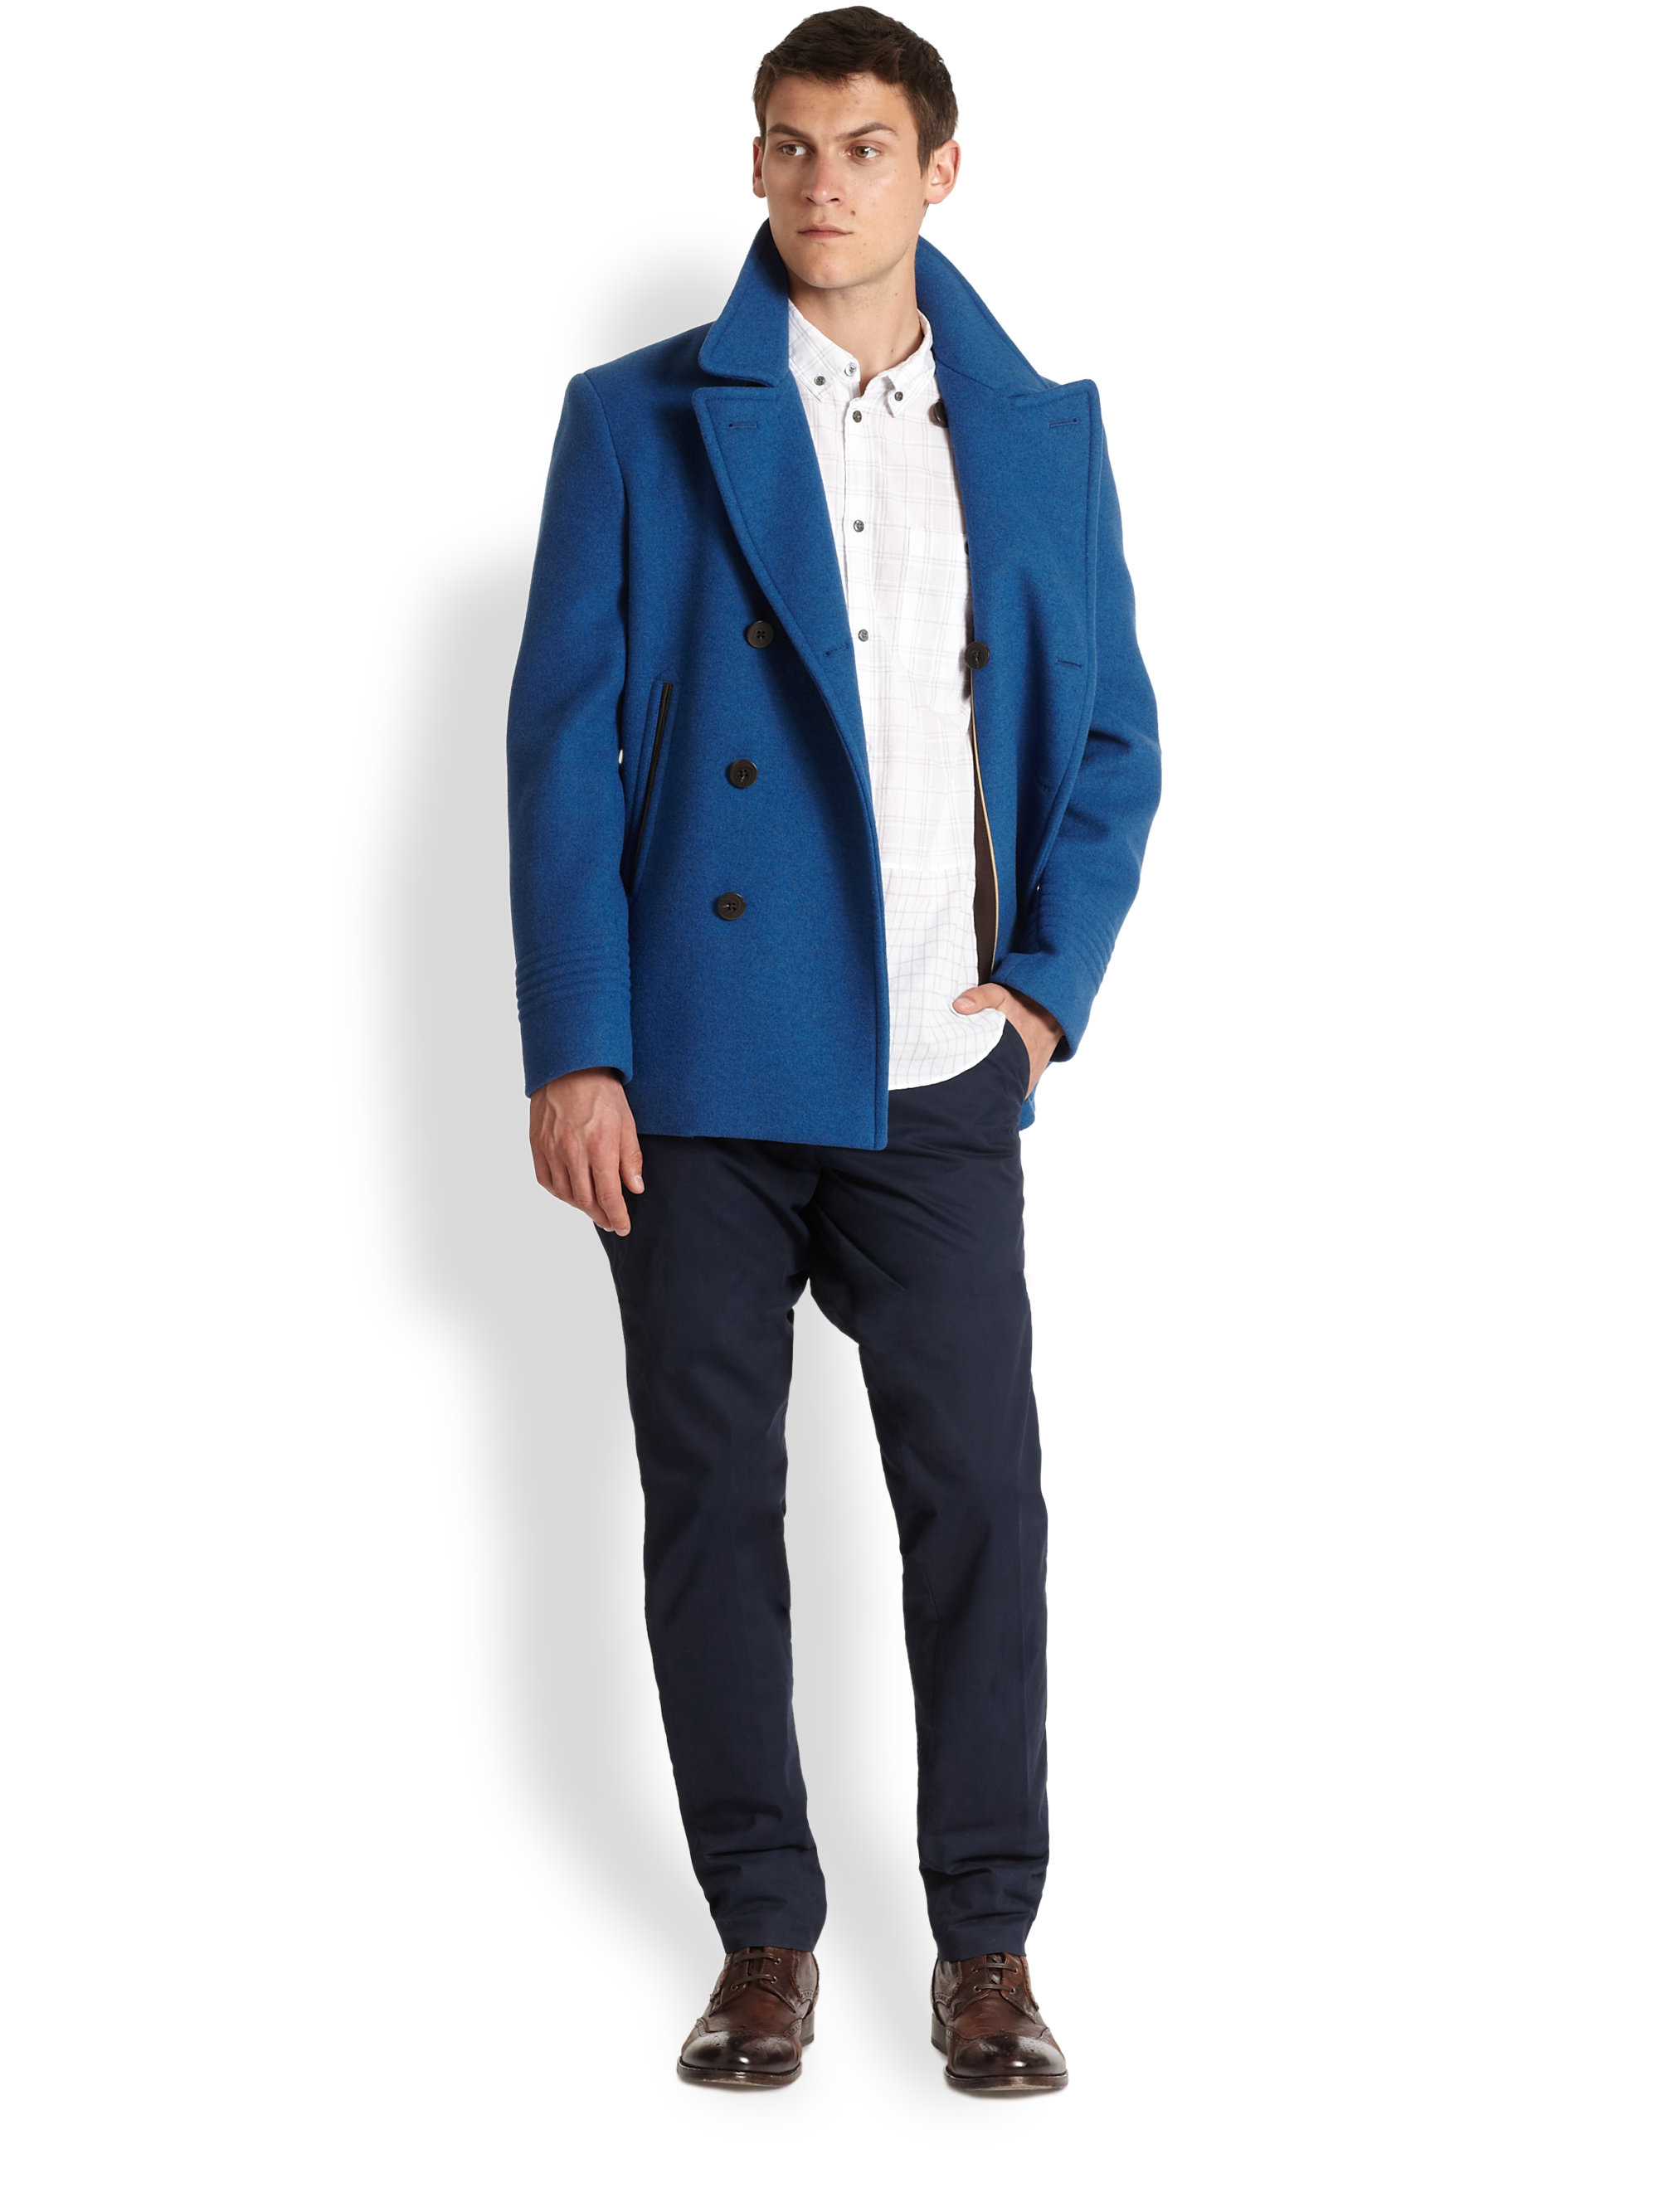 Marc by marc jacobs Rushmore Wool Peacoat in Blue for Men   Lyst